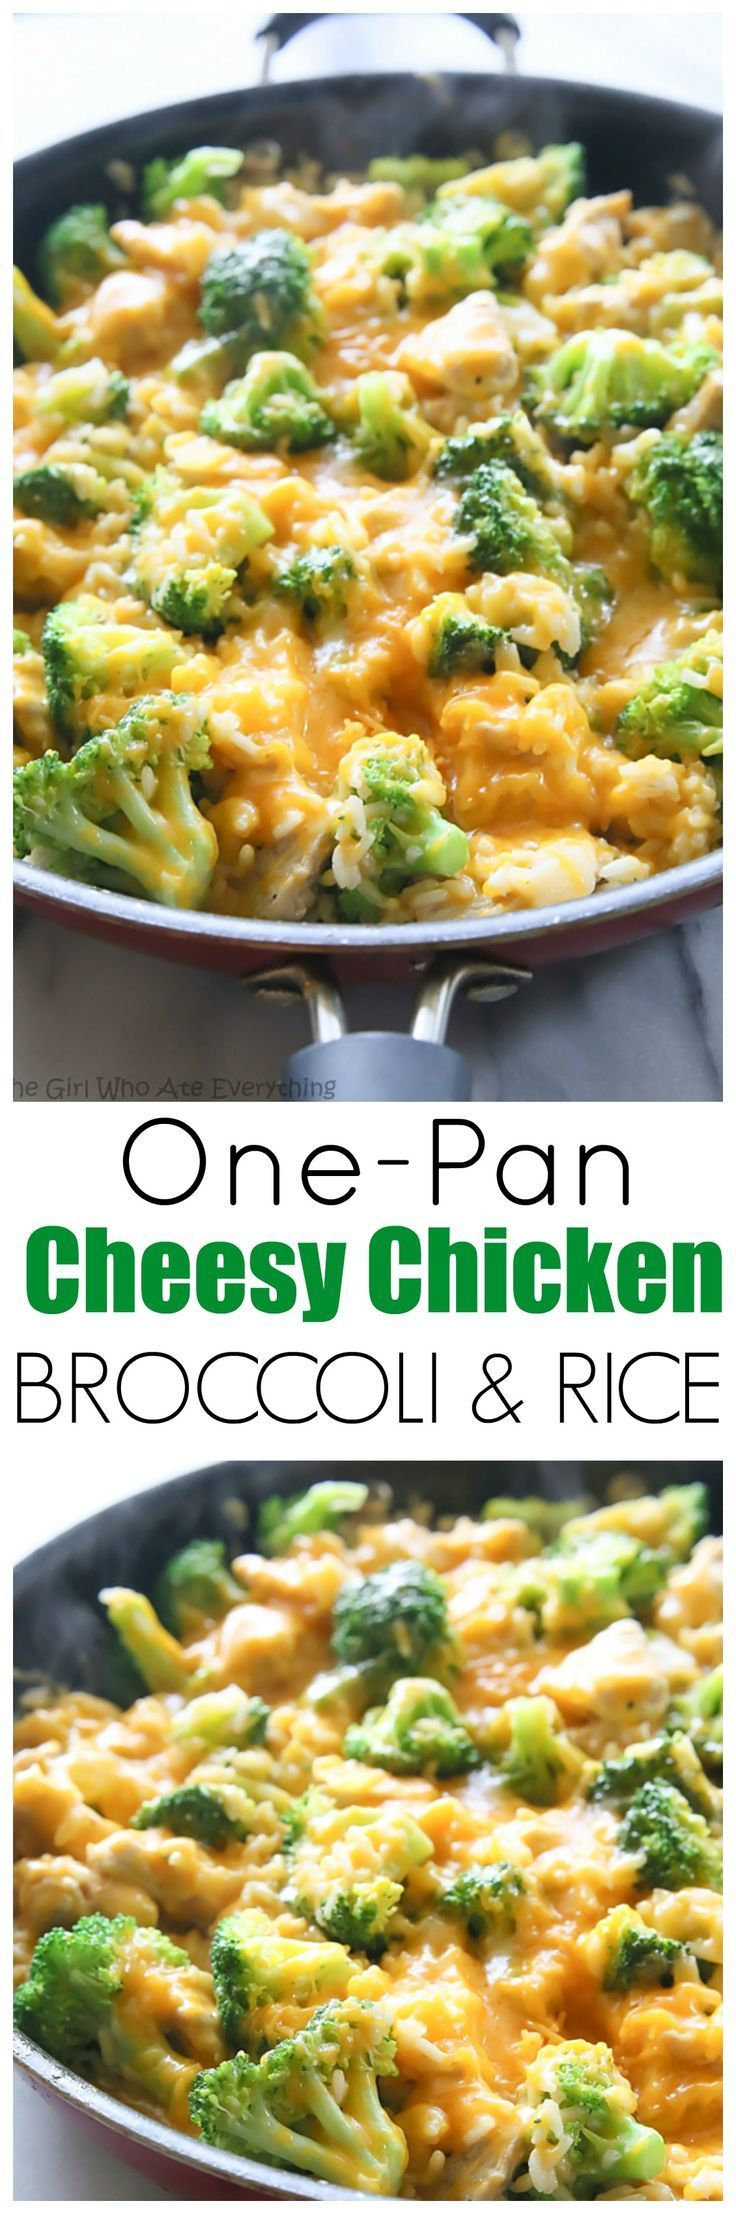 One-Pan Cheesy Broccoli and Rice Skillet - my go-to for an easy dinner. the-girl-who-ate-...